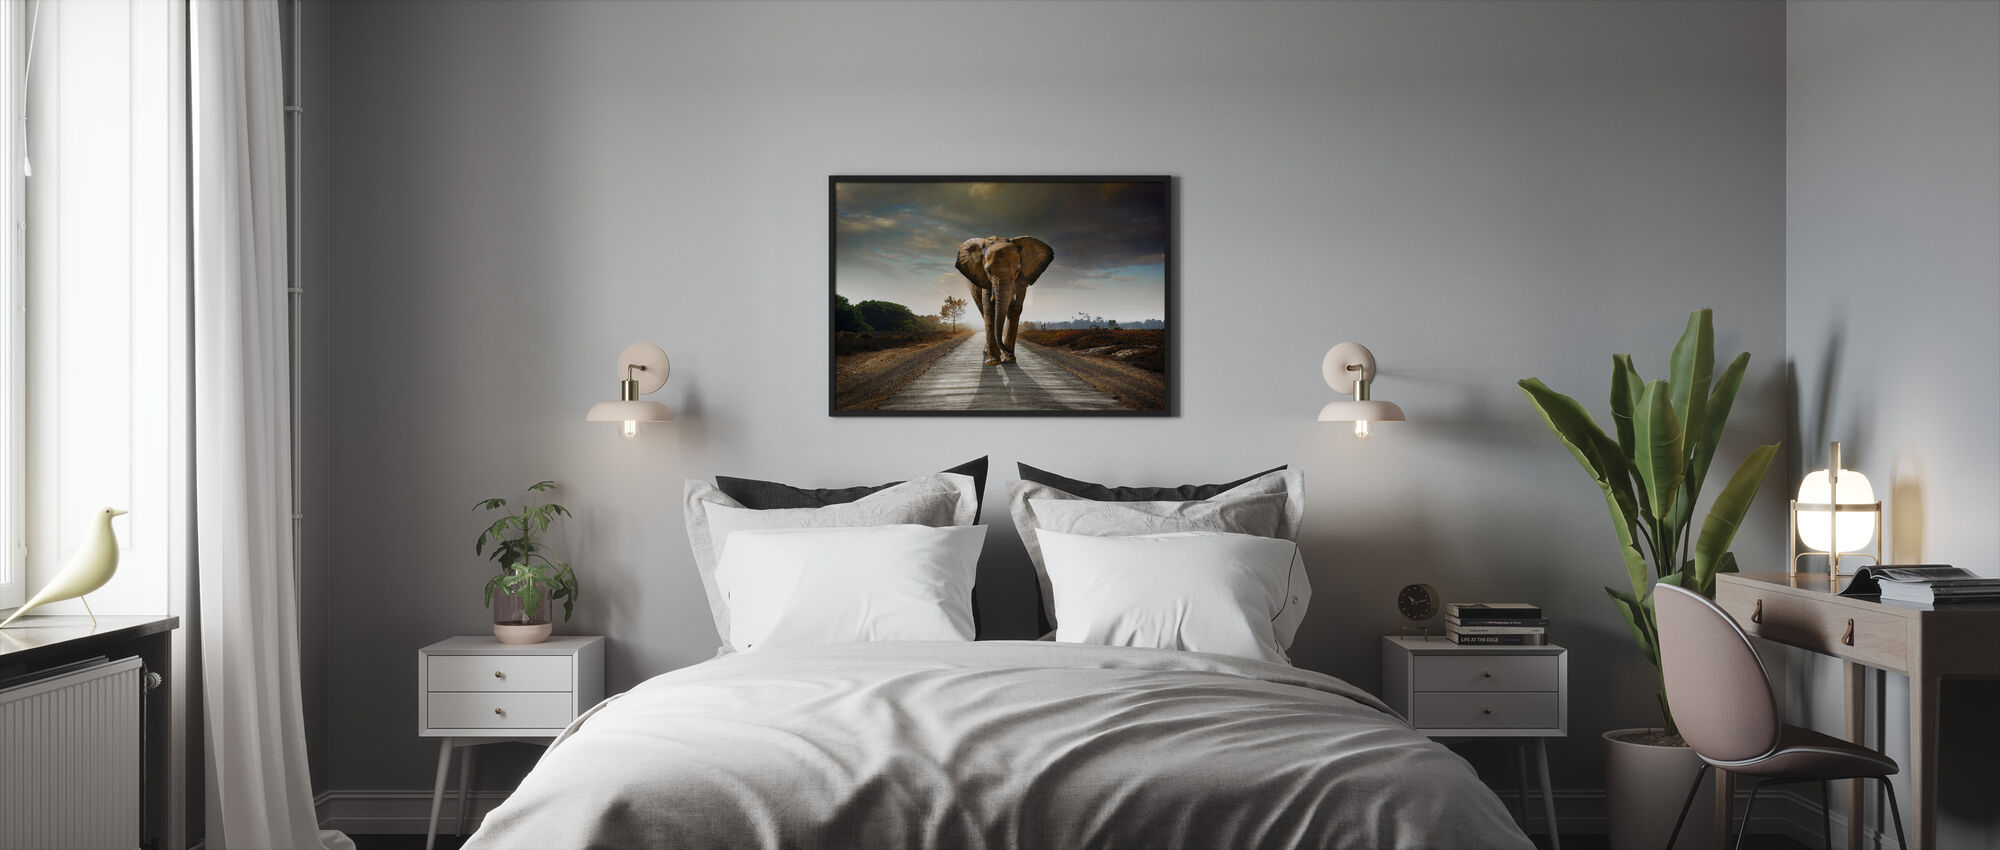 Elephant Road - Framed print - Bedroom